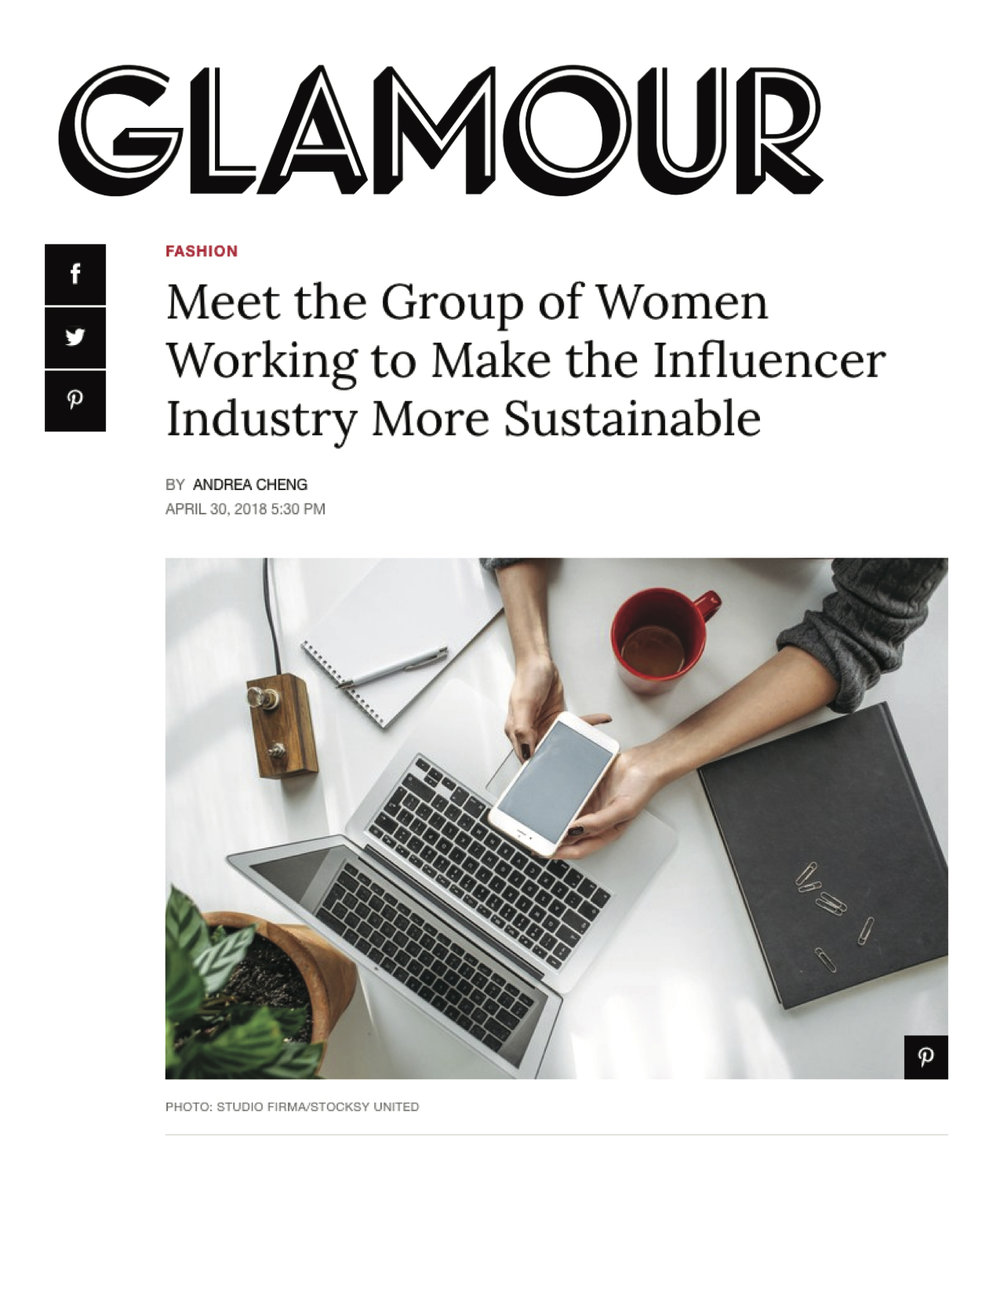 Glamour magazine feature on the Ethical Writers & Creatives